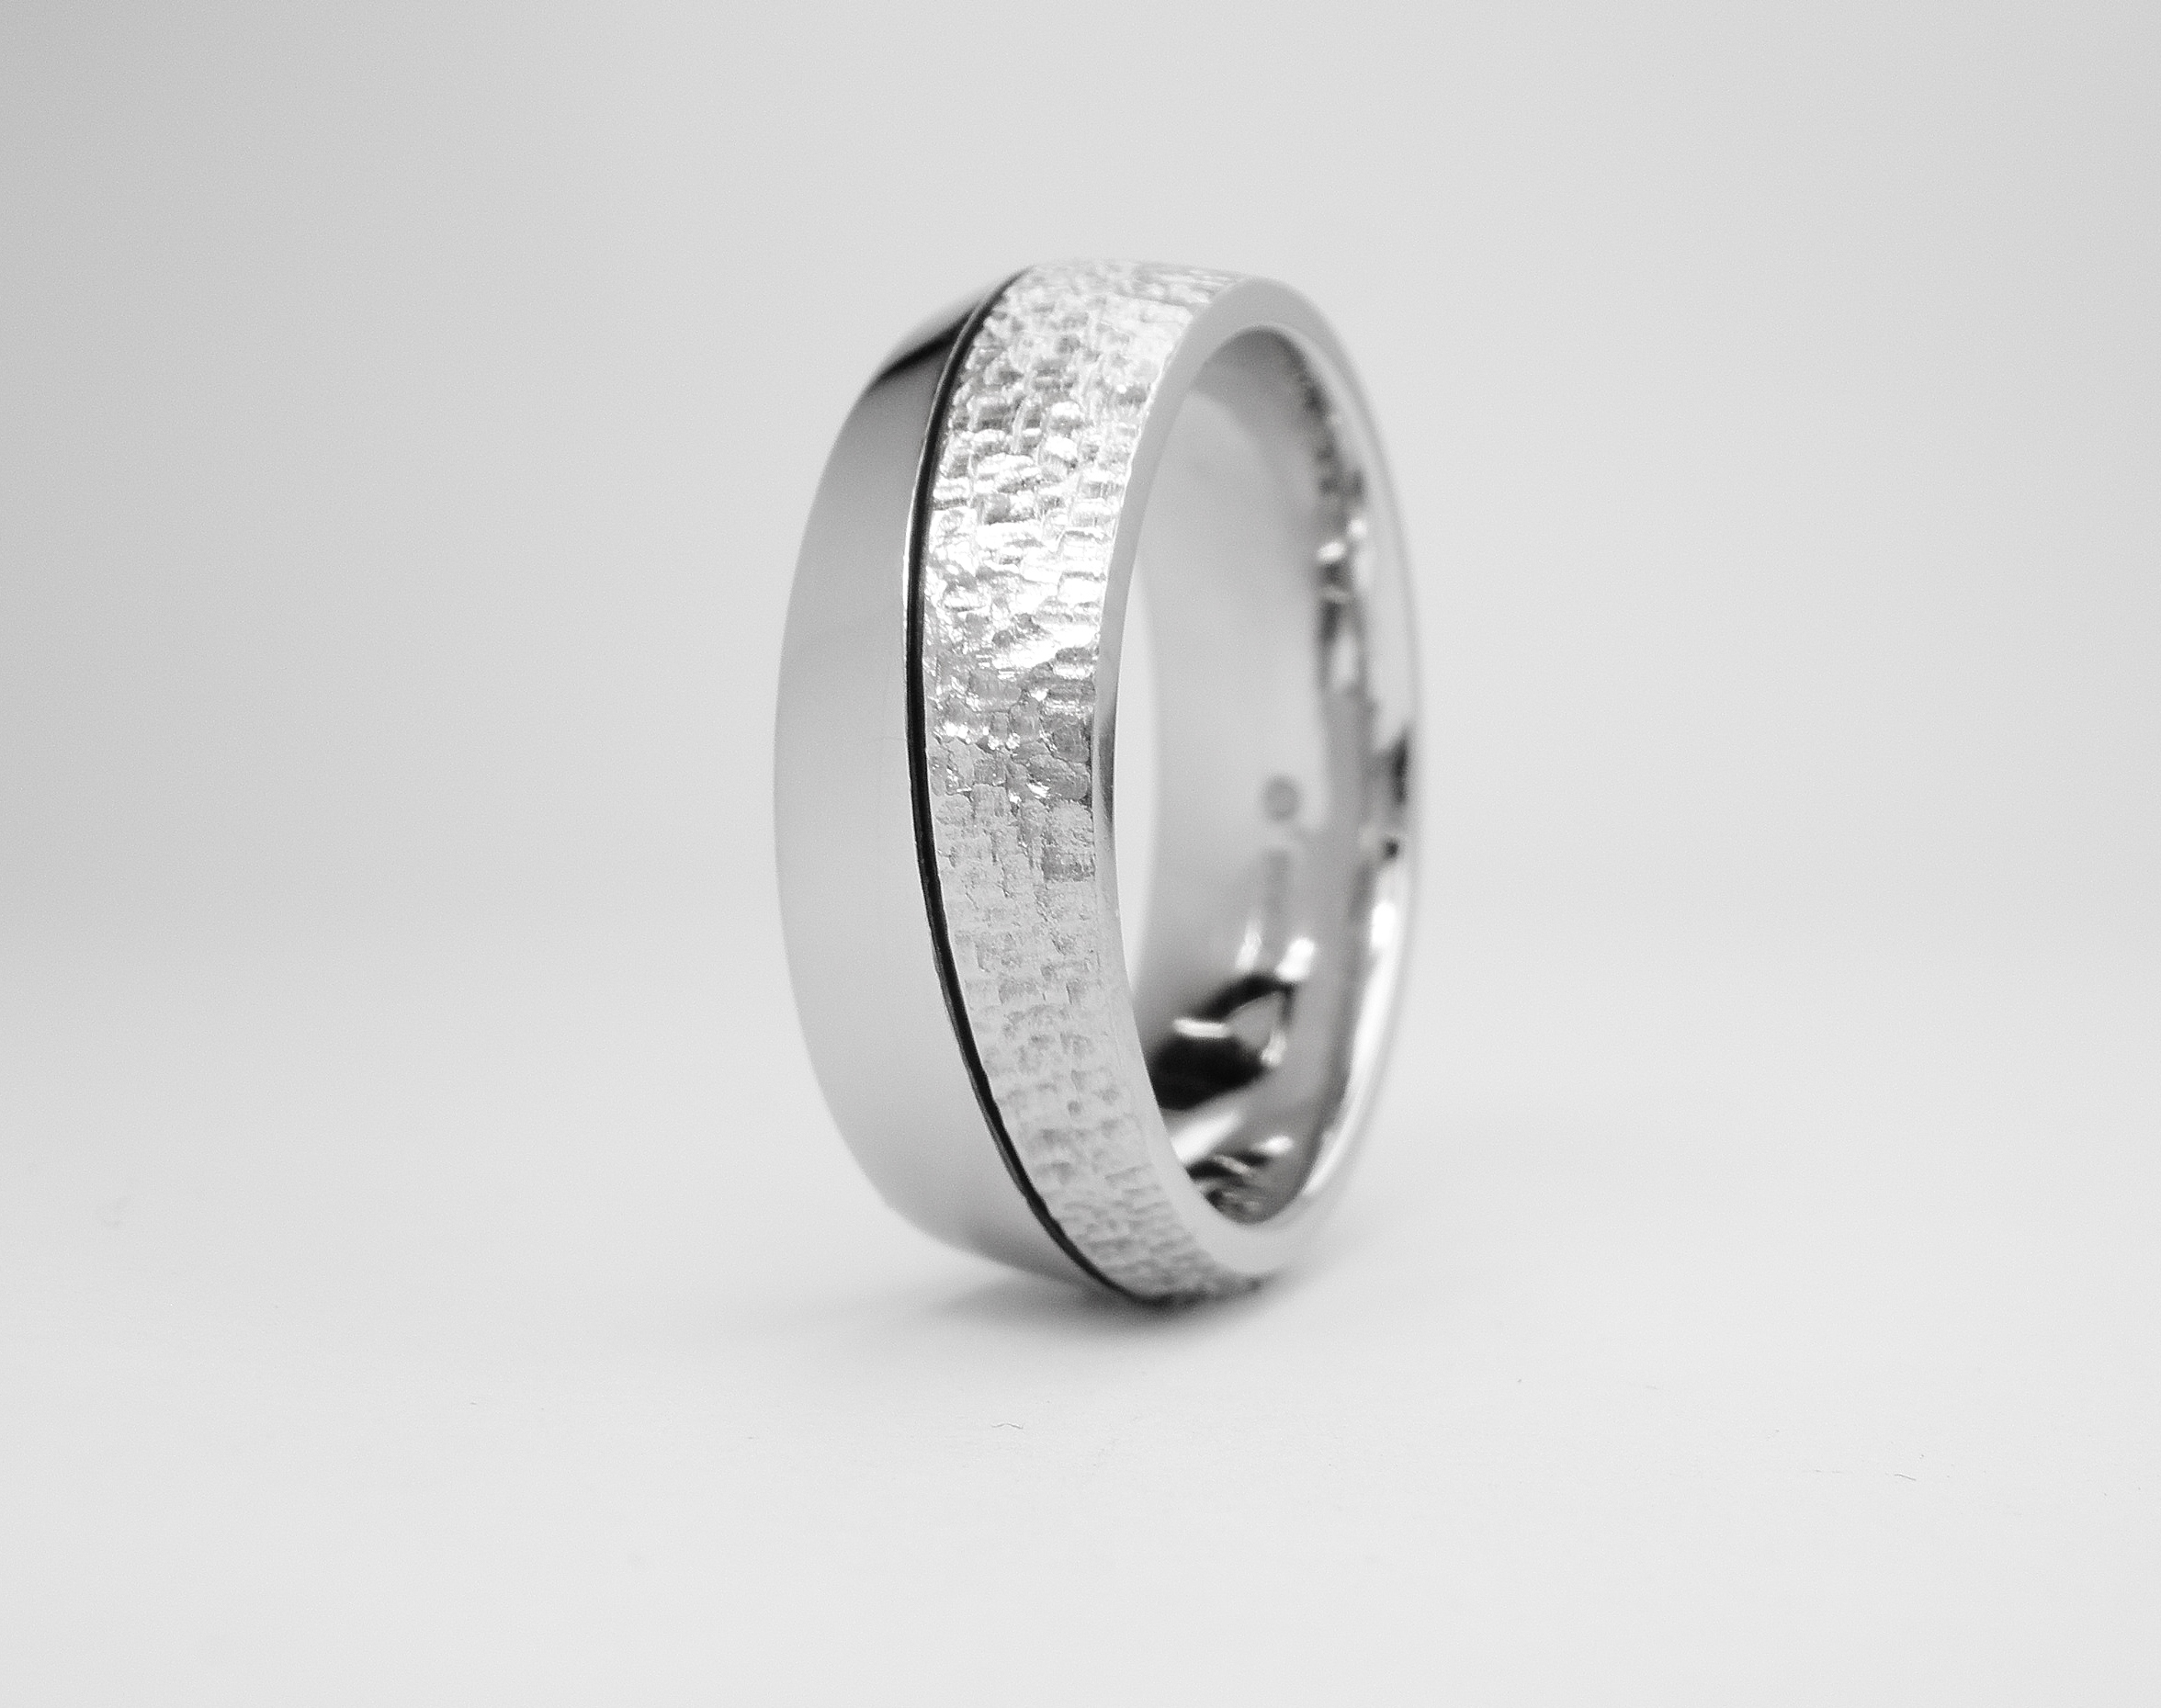 Palladium flat 'V' sectioned gents wedding ring with darkened orbital line cut, polished finish one side & rough texture on other.